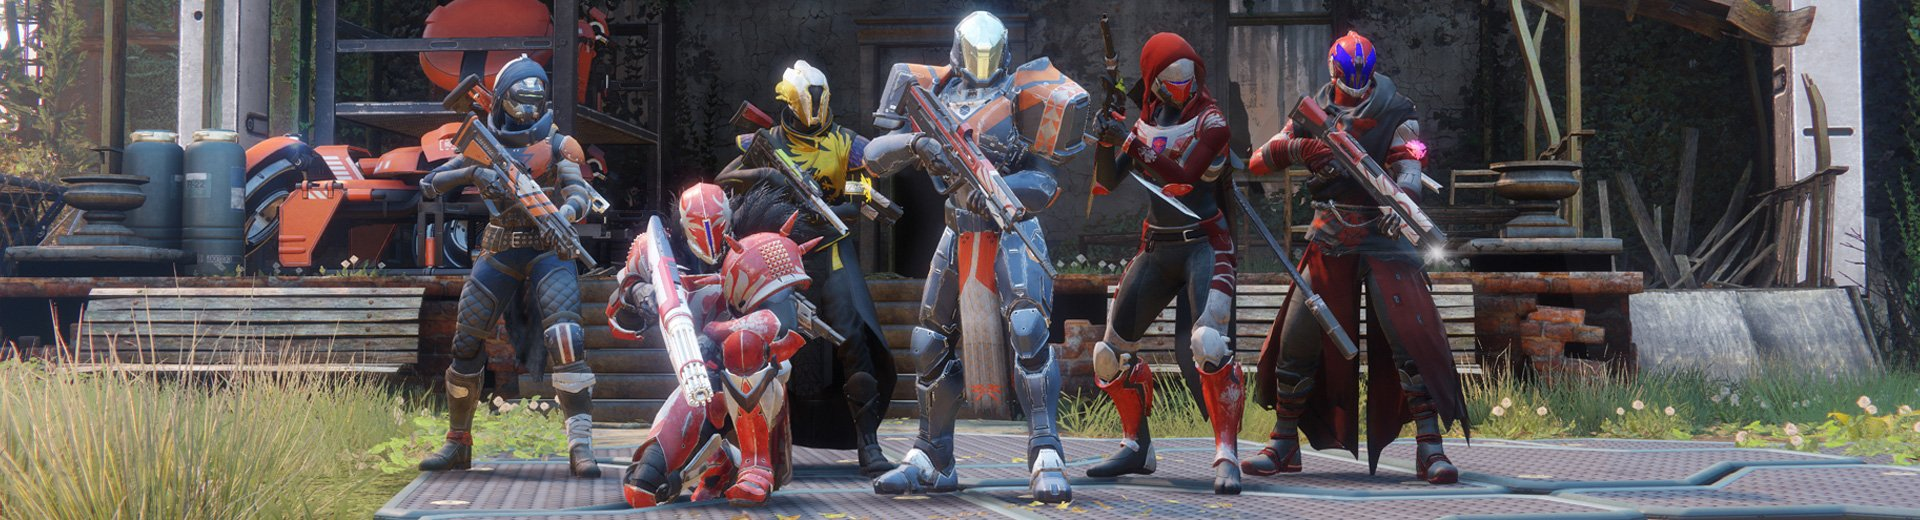 Help destiny 2 clans guide bungie destiny clans and bungie groups are two distinct community types bungie groups exist outside of destiny and focus on communication and shared stopboris Images